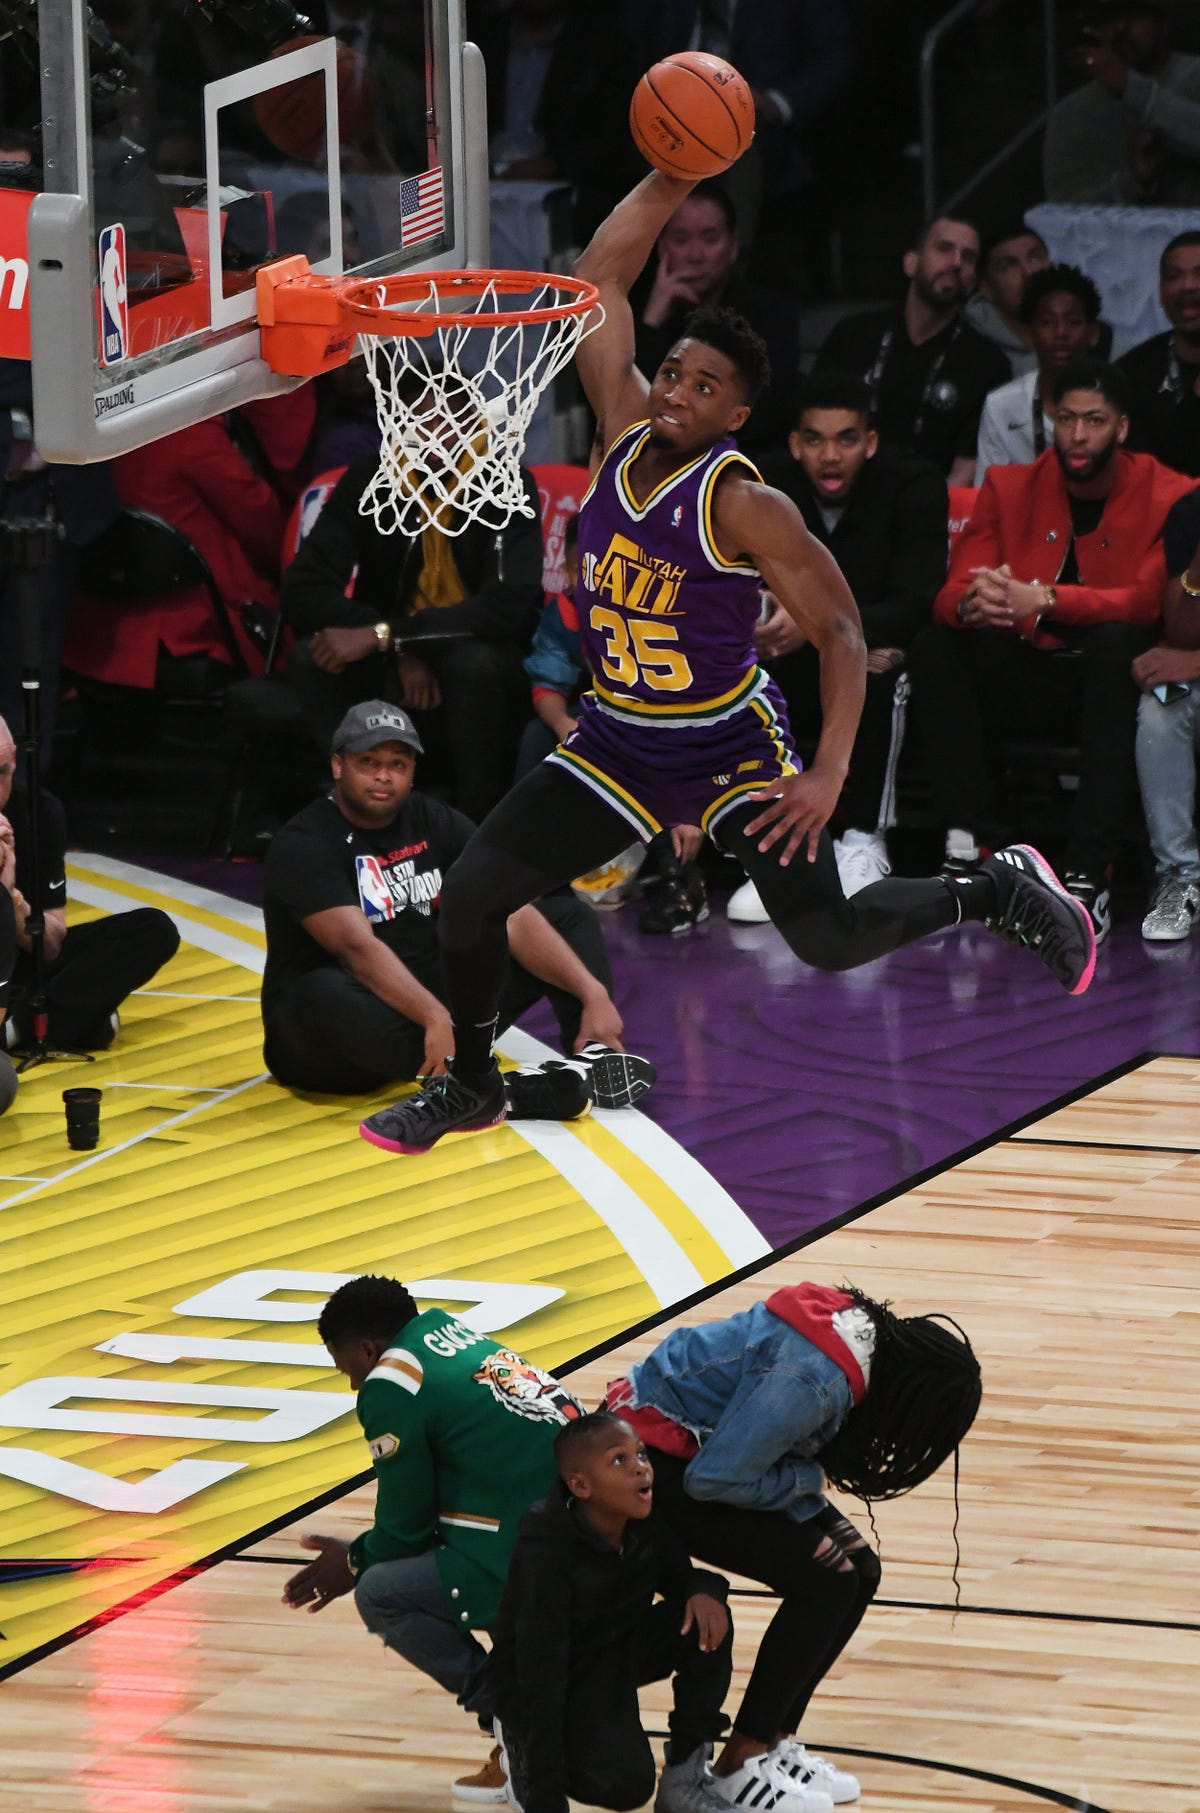 promo code 069db f339c All-Star dunk contest: Utah's Donovan Mitchell wins with nod ...